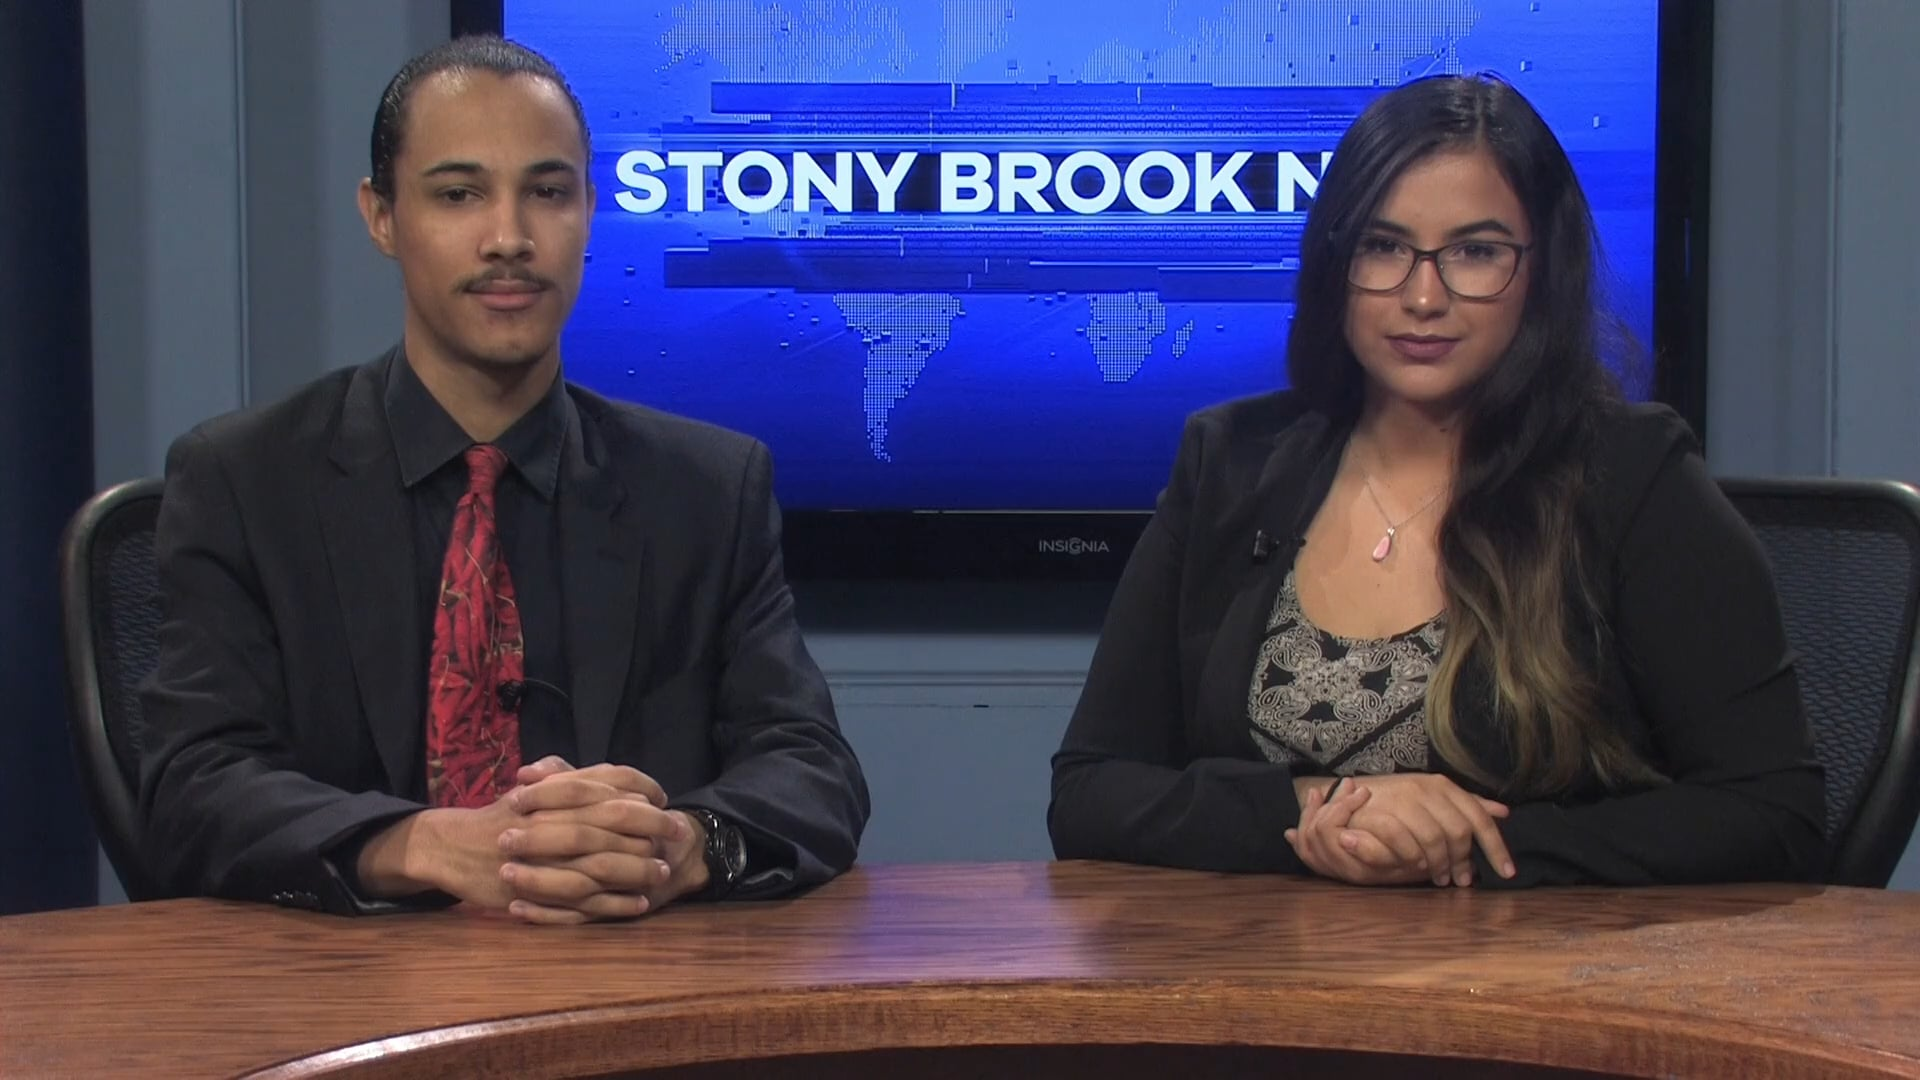 Stony Brook Newsbreak